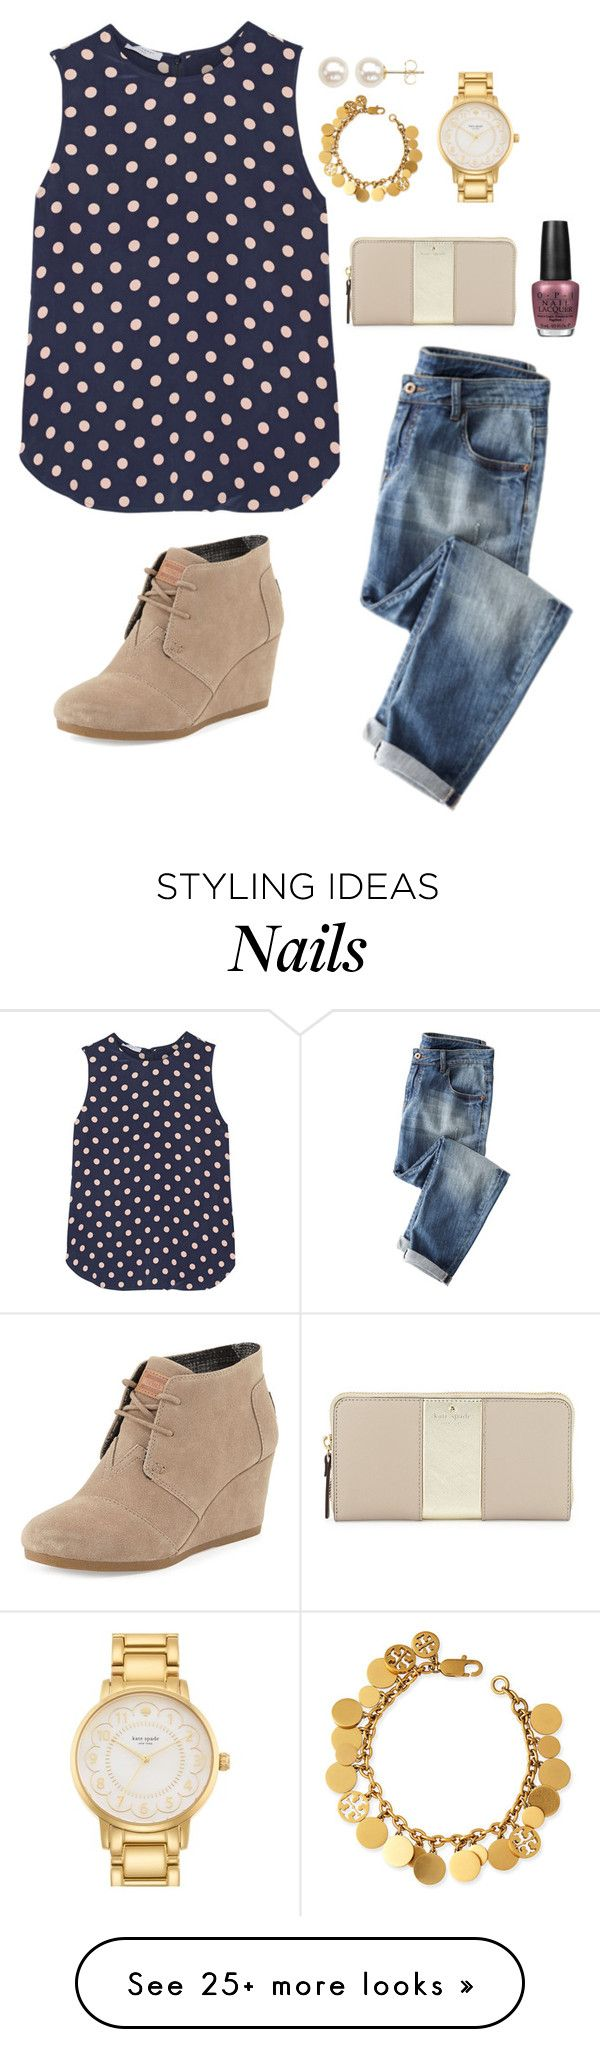 """I need a snow day tomorrow"" by valerienwashington on Polyvore featuring Equipment, TOMS, Tory Burch, Kate Spade, Honora and OPI"